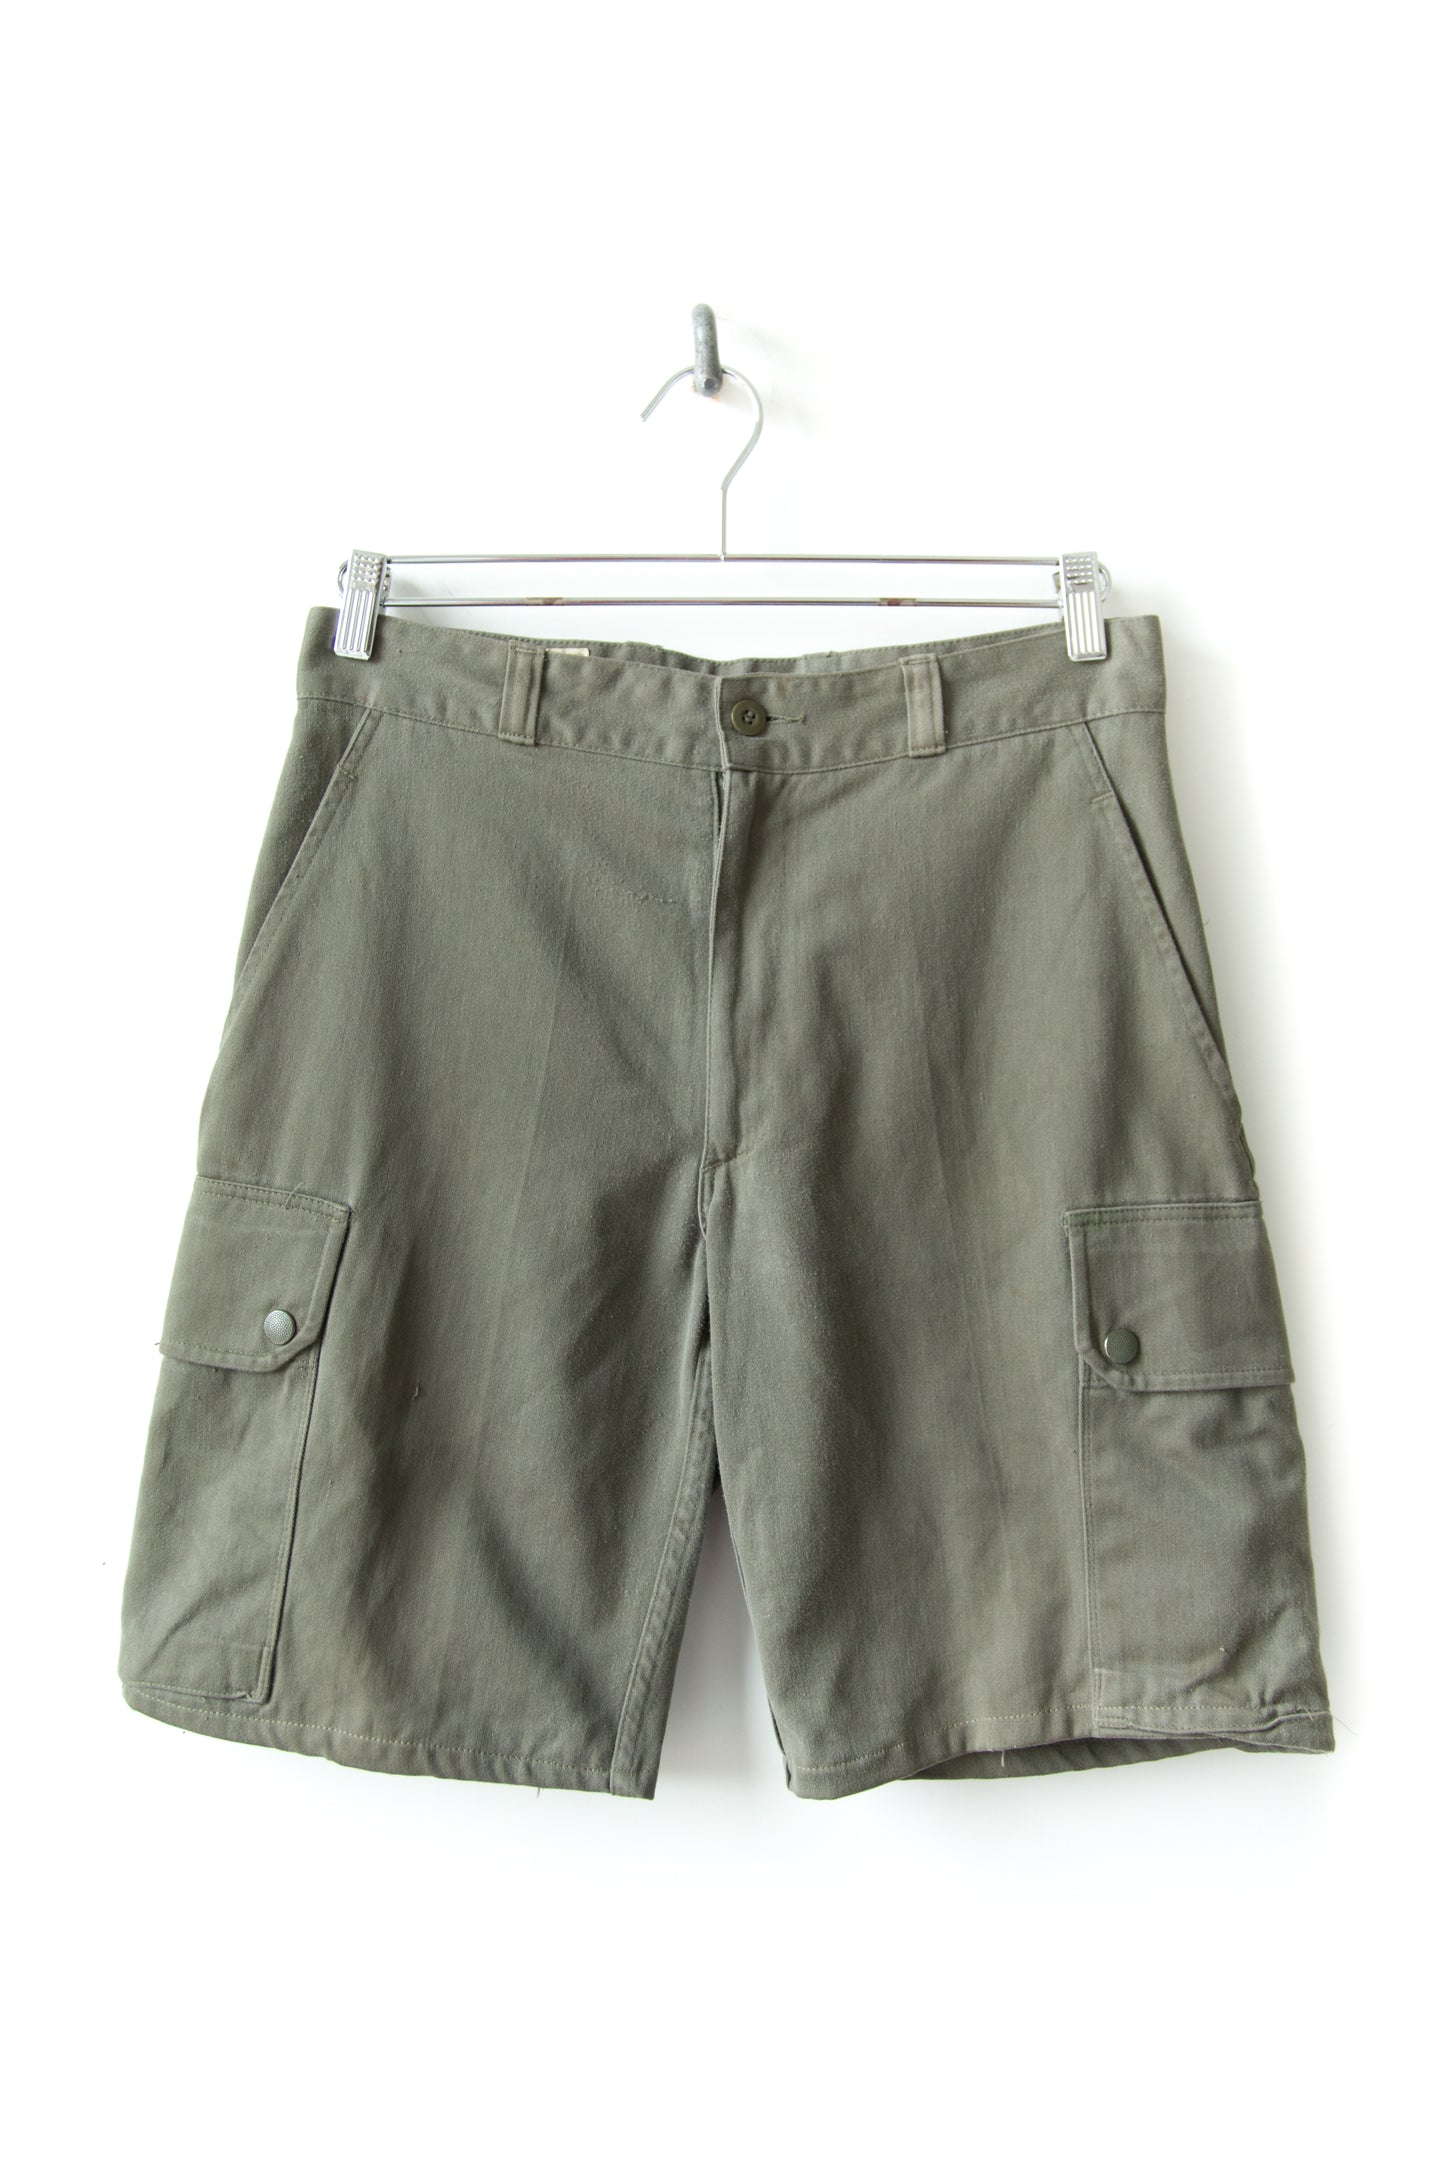 1987 Soft French Military Shorts Size 31